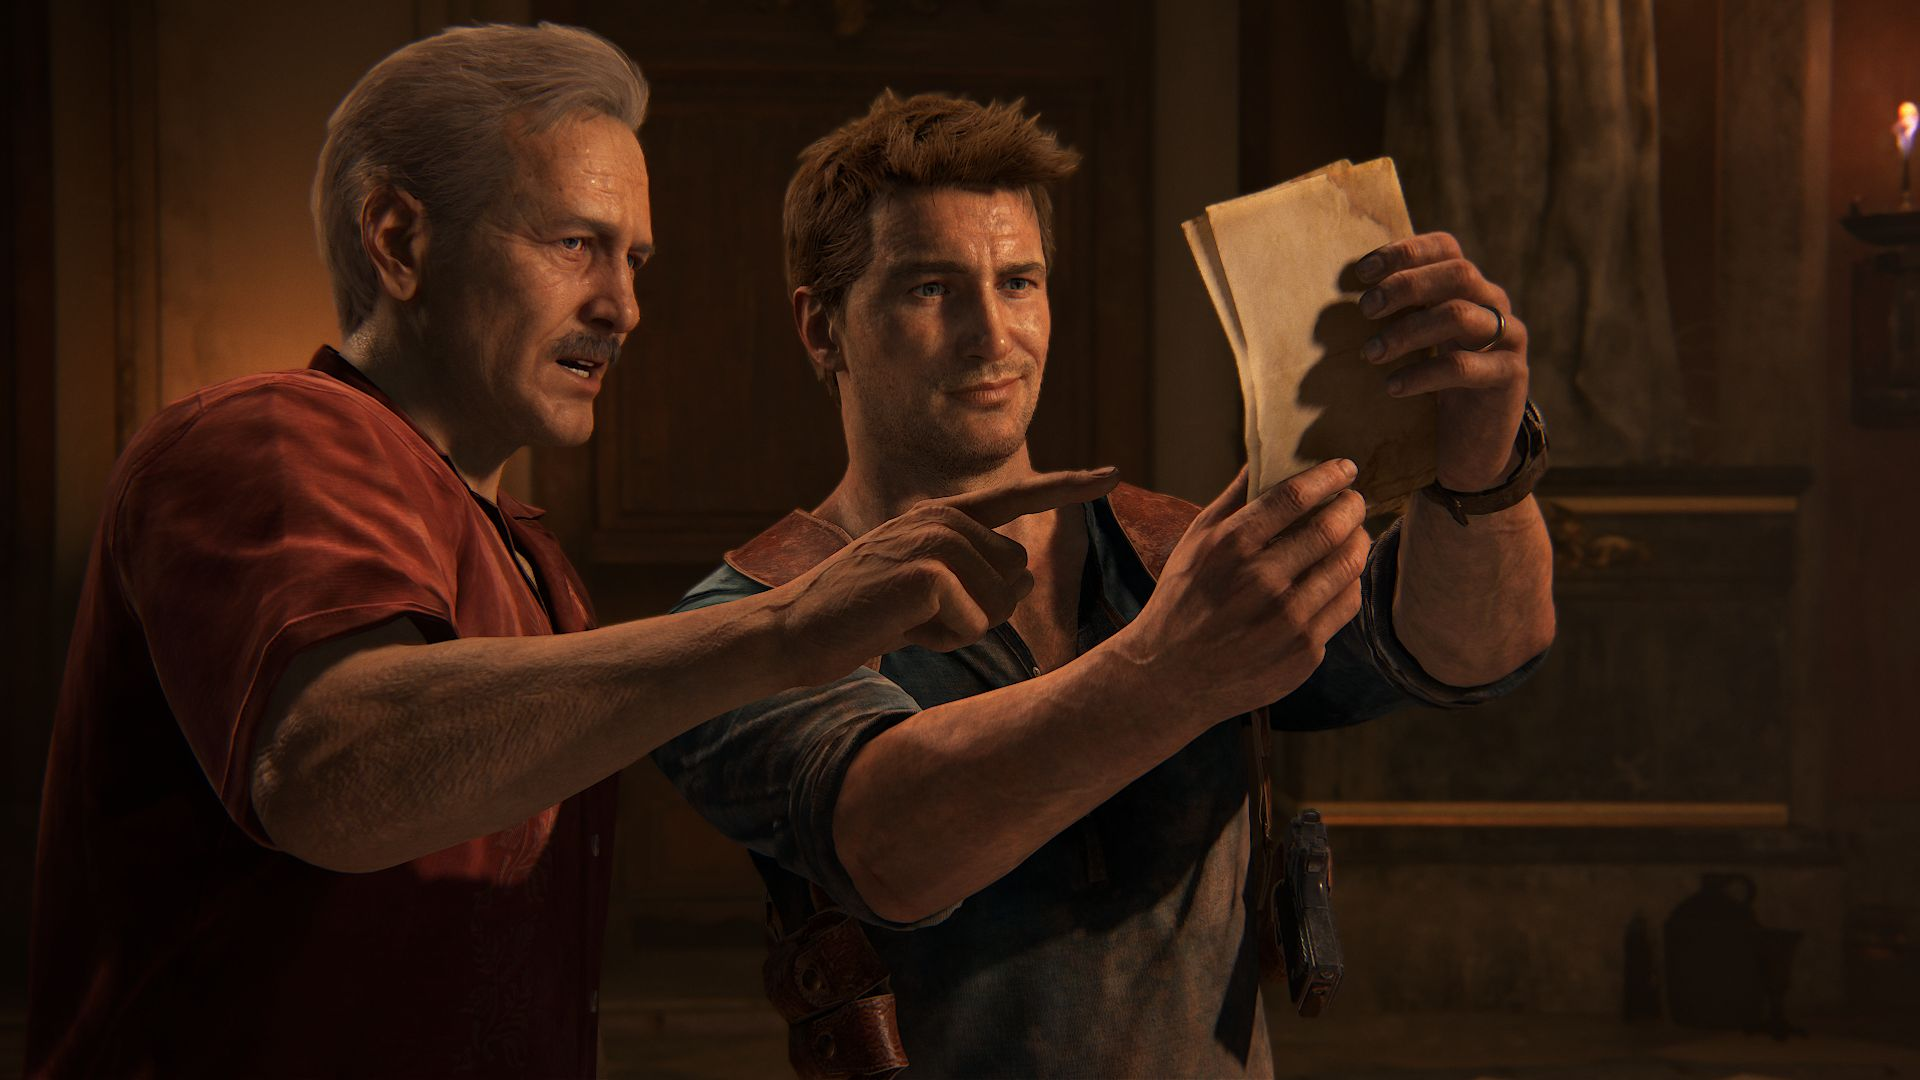 Naughty Dog Details PS4 Pro Enhancements for Uncharted 4 and The